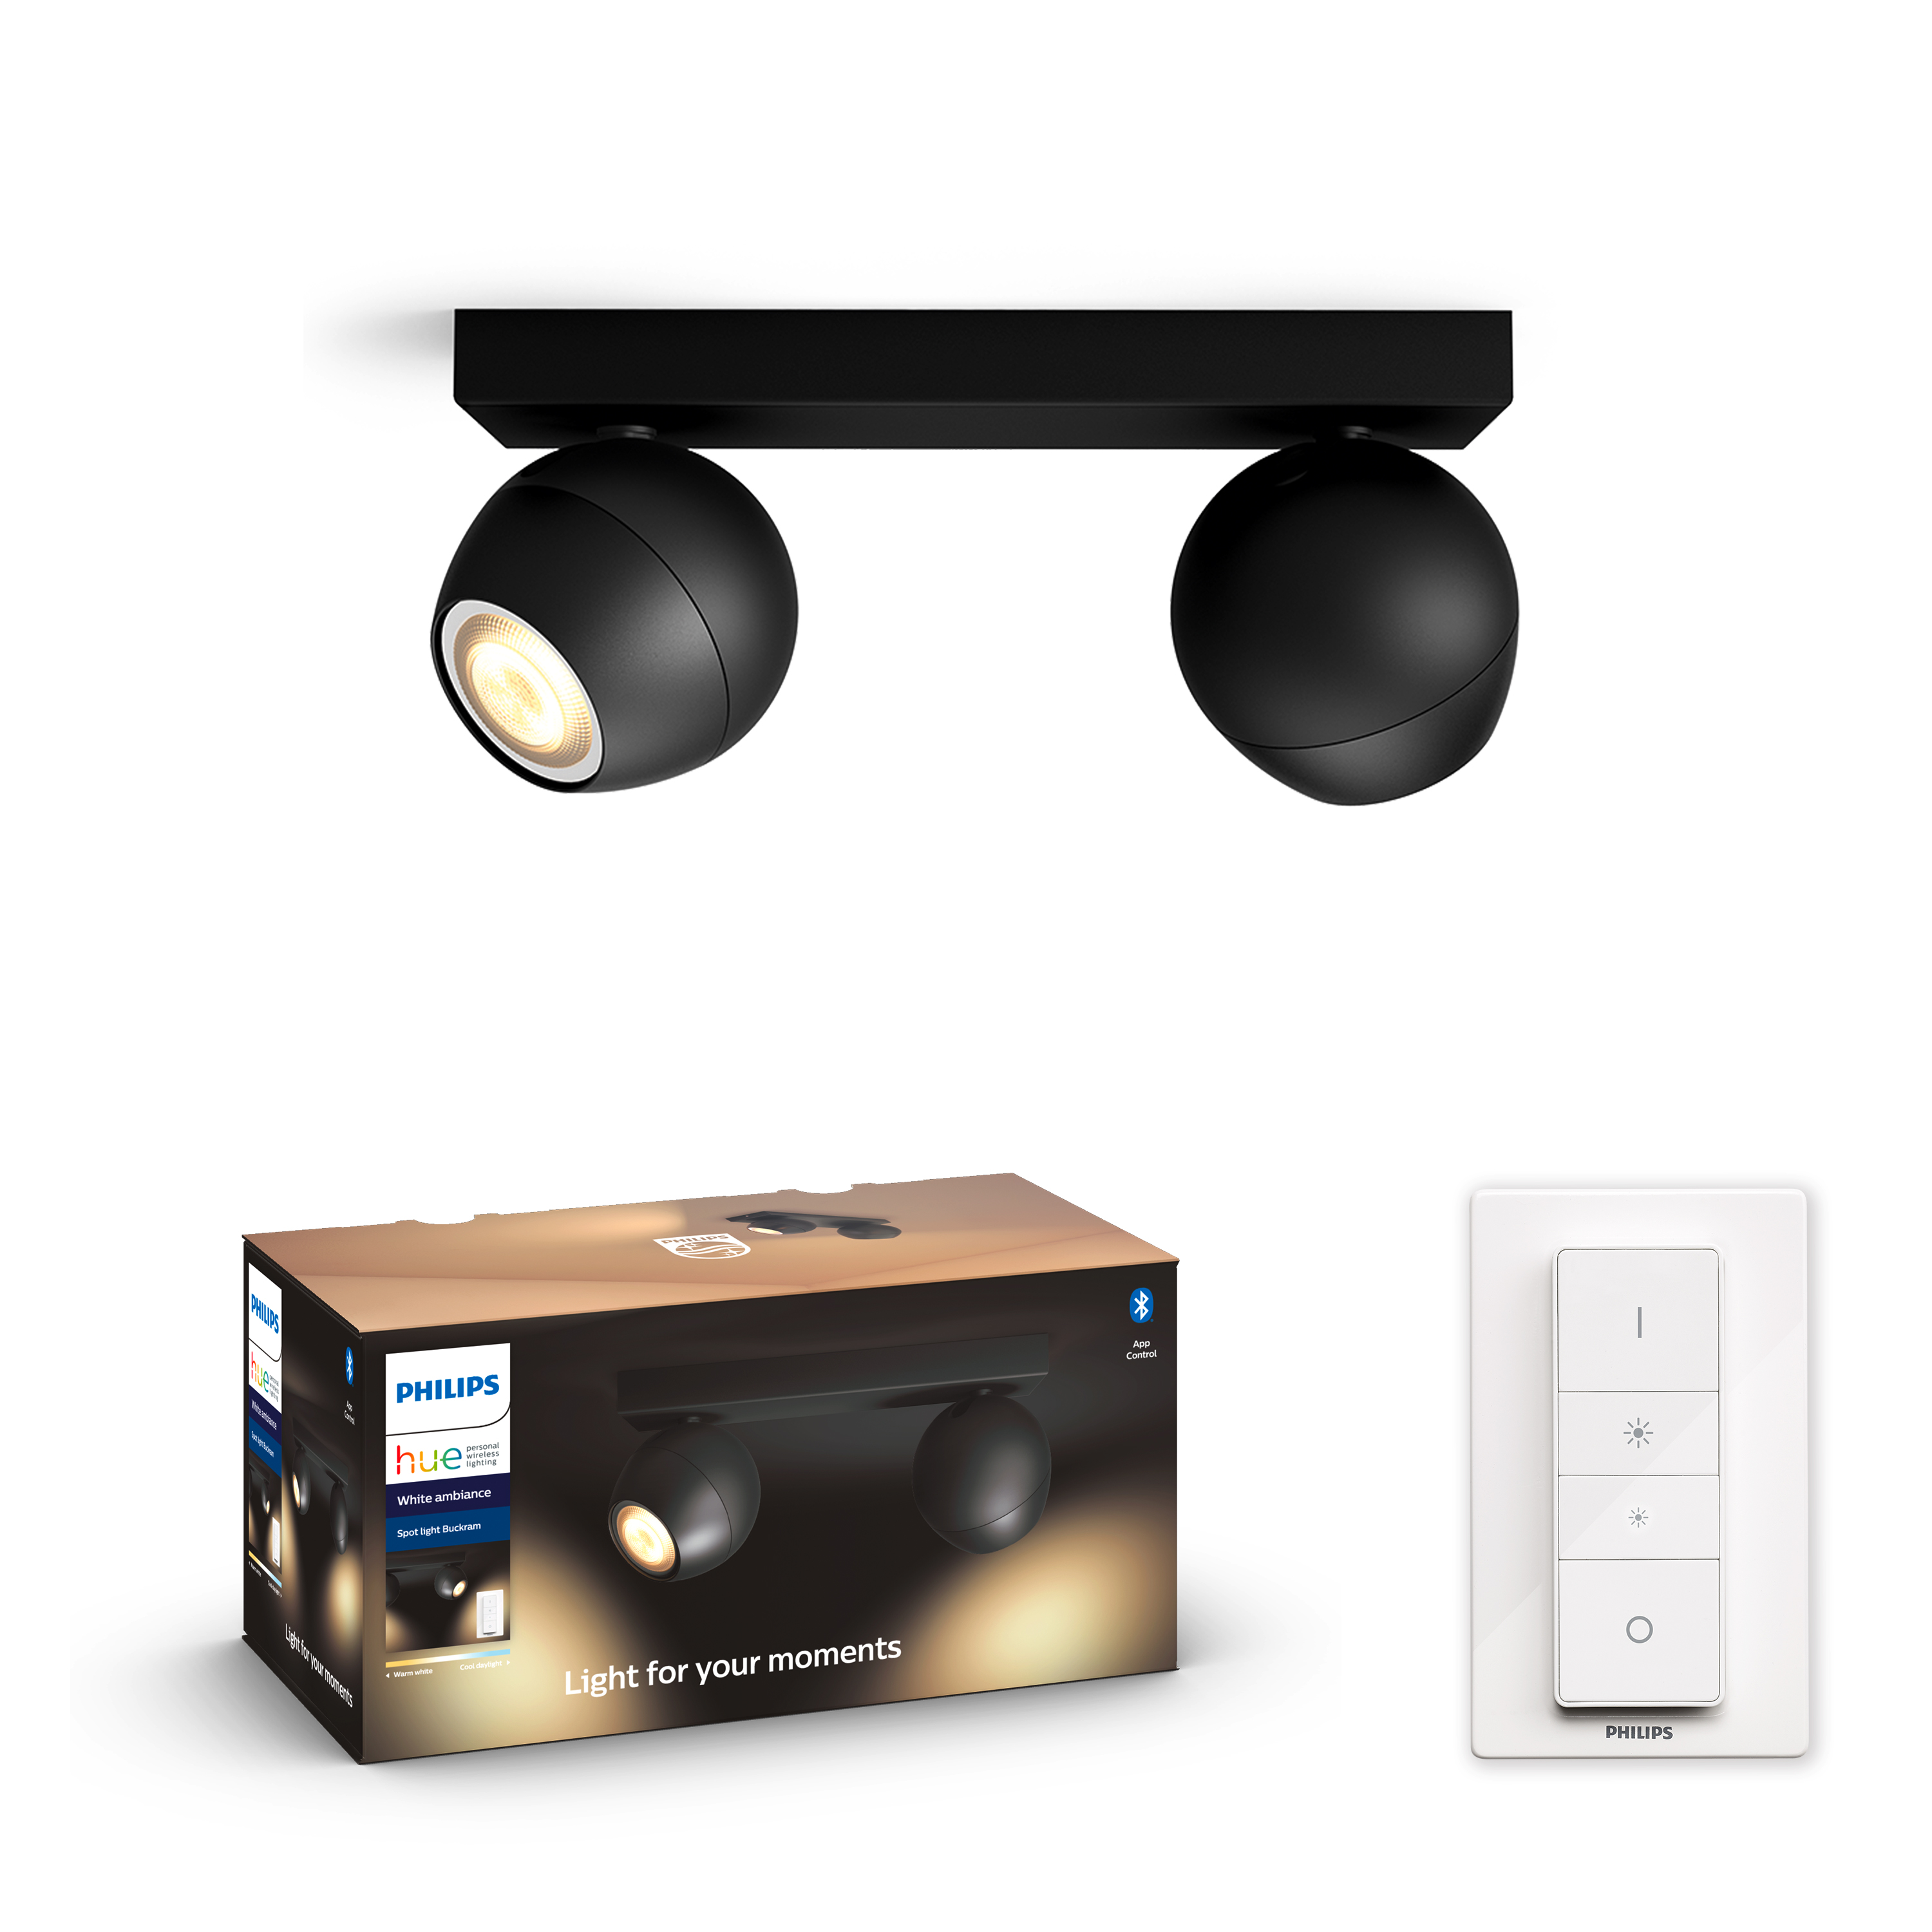 Philips Hue - BUCKRAM - Black 2x5.5W - White Ambiance - Bluetooth Included Dimmer